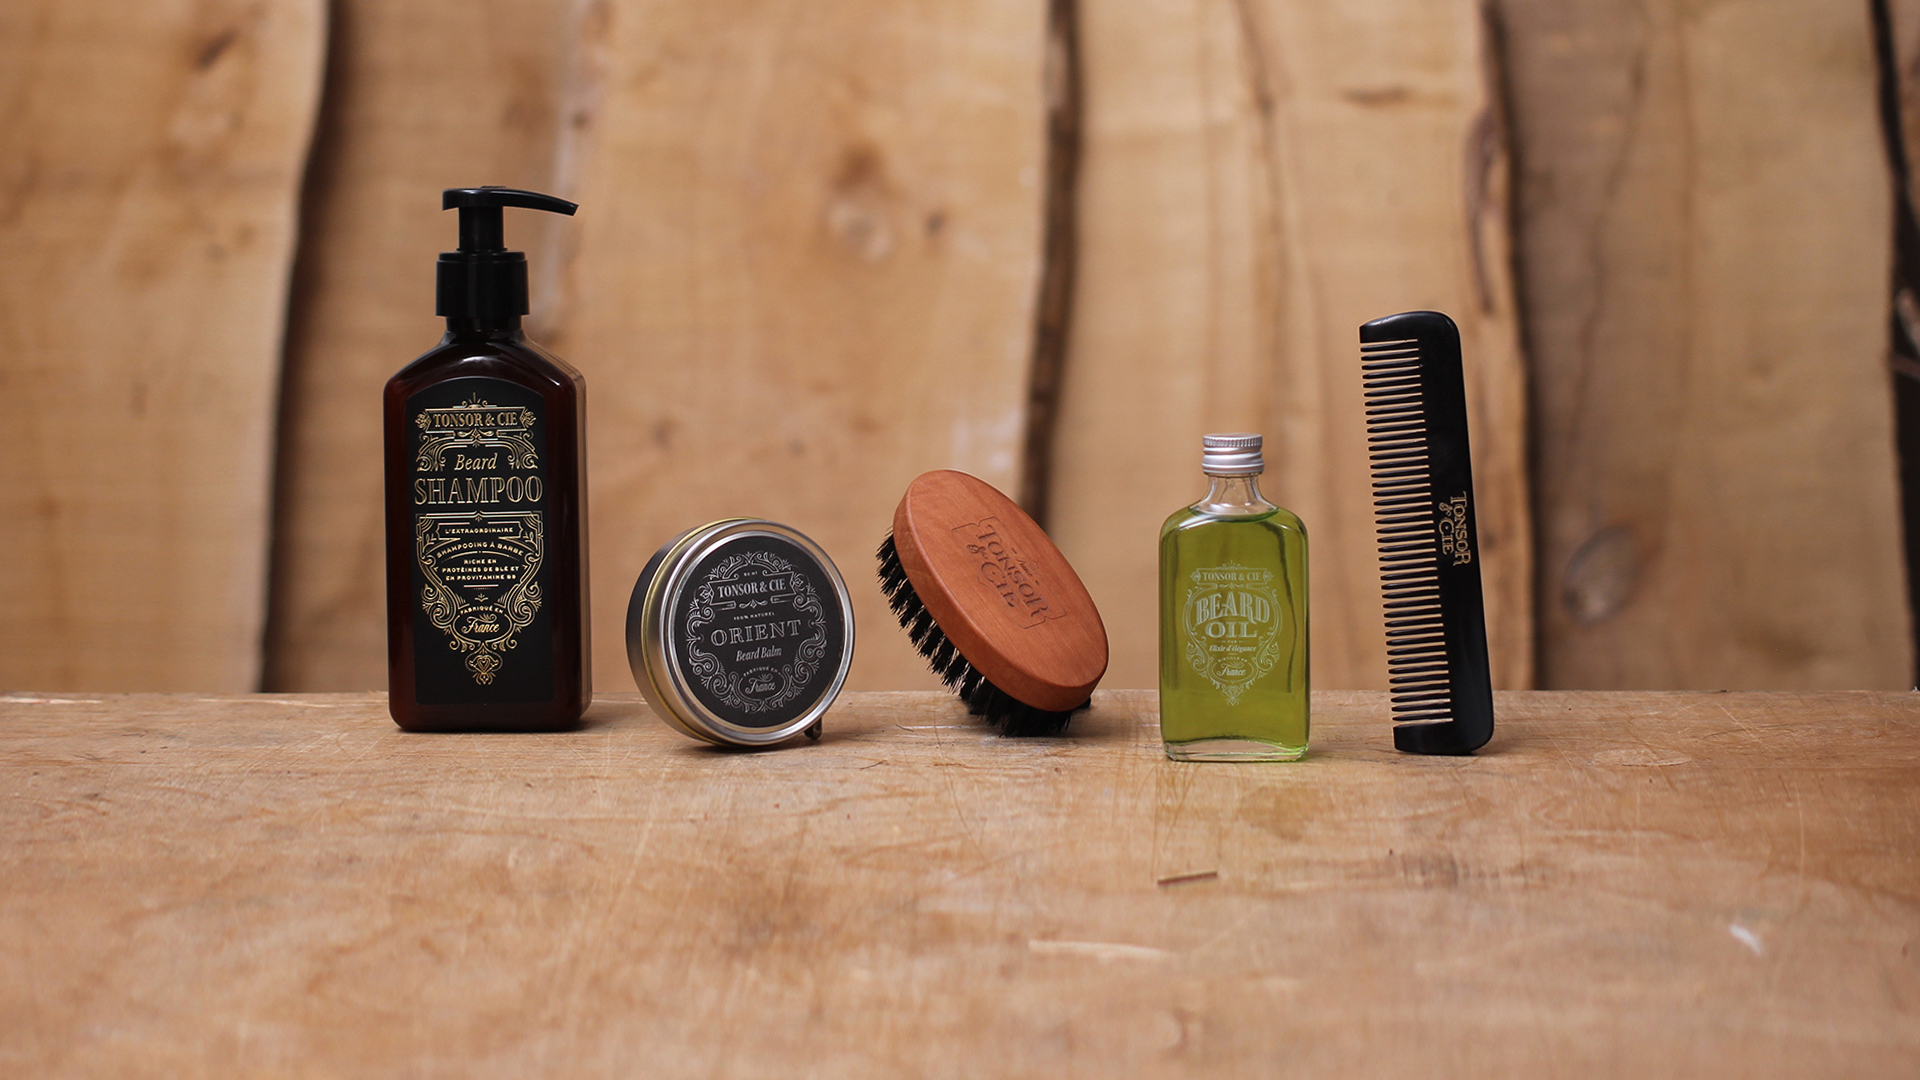 Tonsor_cie_compagnie_barbershop_rituel_barbe_entretien_baume_huile_barbier_coiffeur